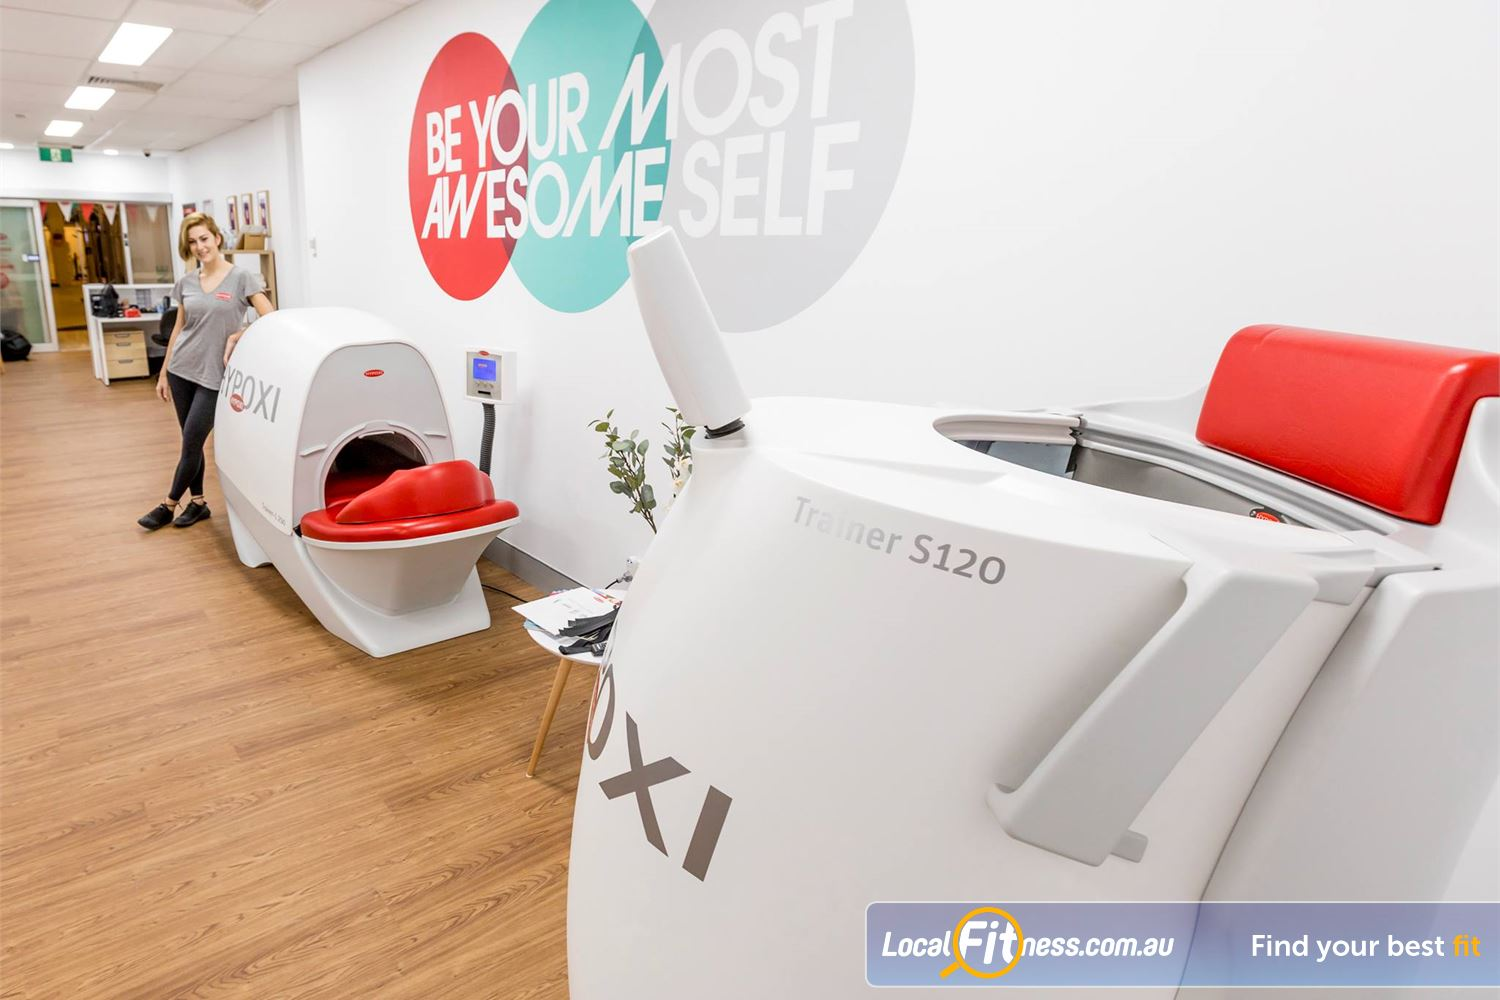 HYPOXI Weight Loss Madeley Help your body work smarter, not harder in our HYPOXI Kingsway weight-loss studio.